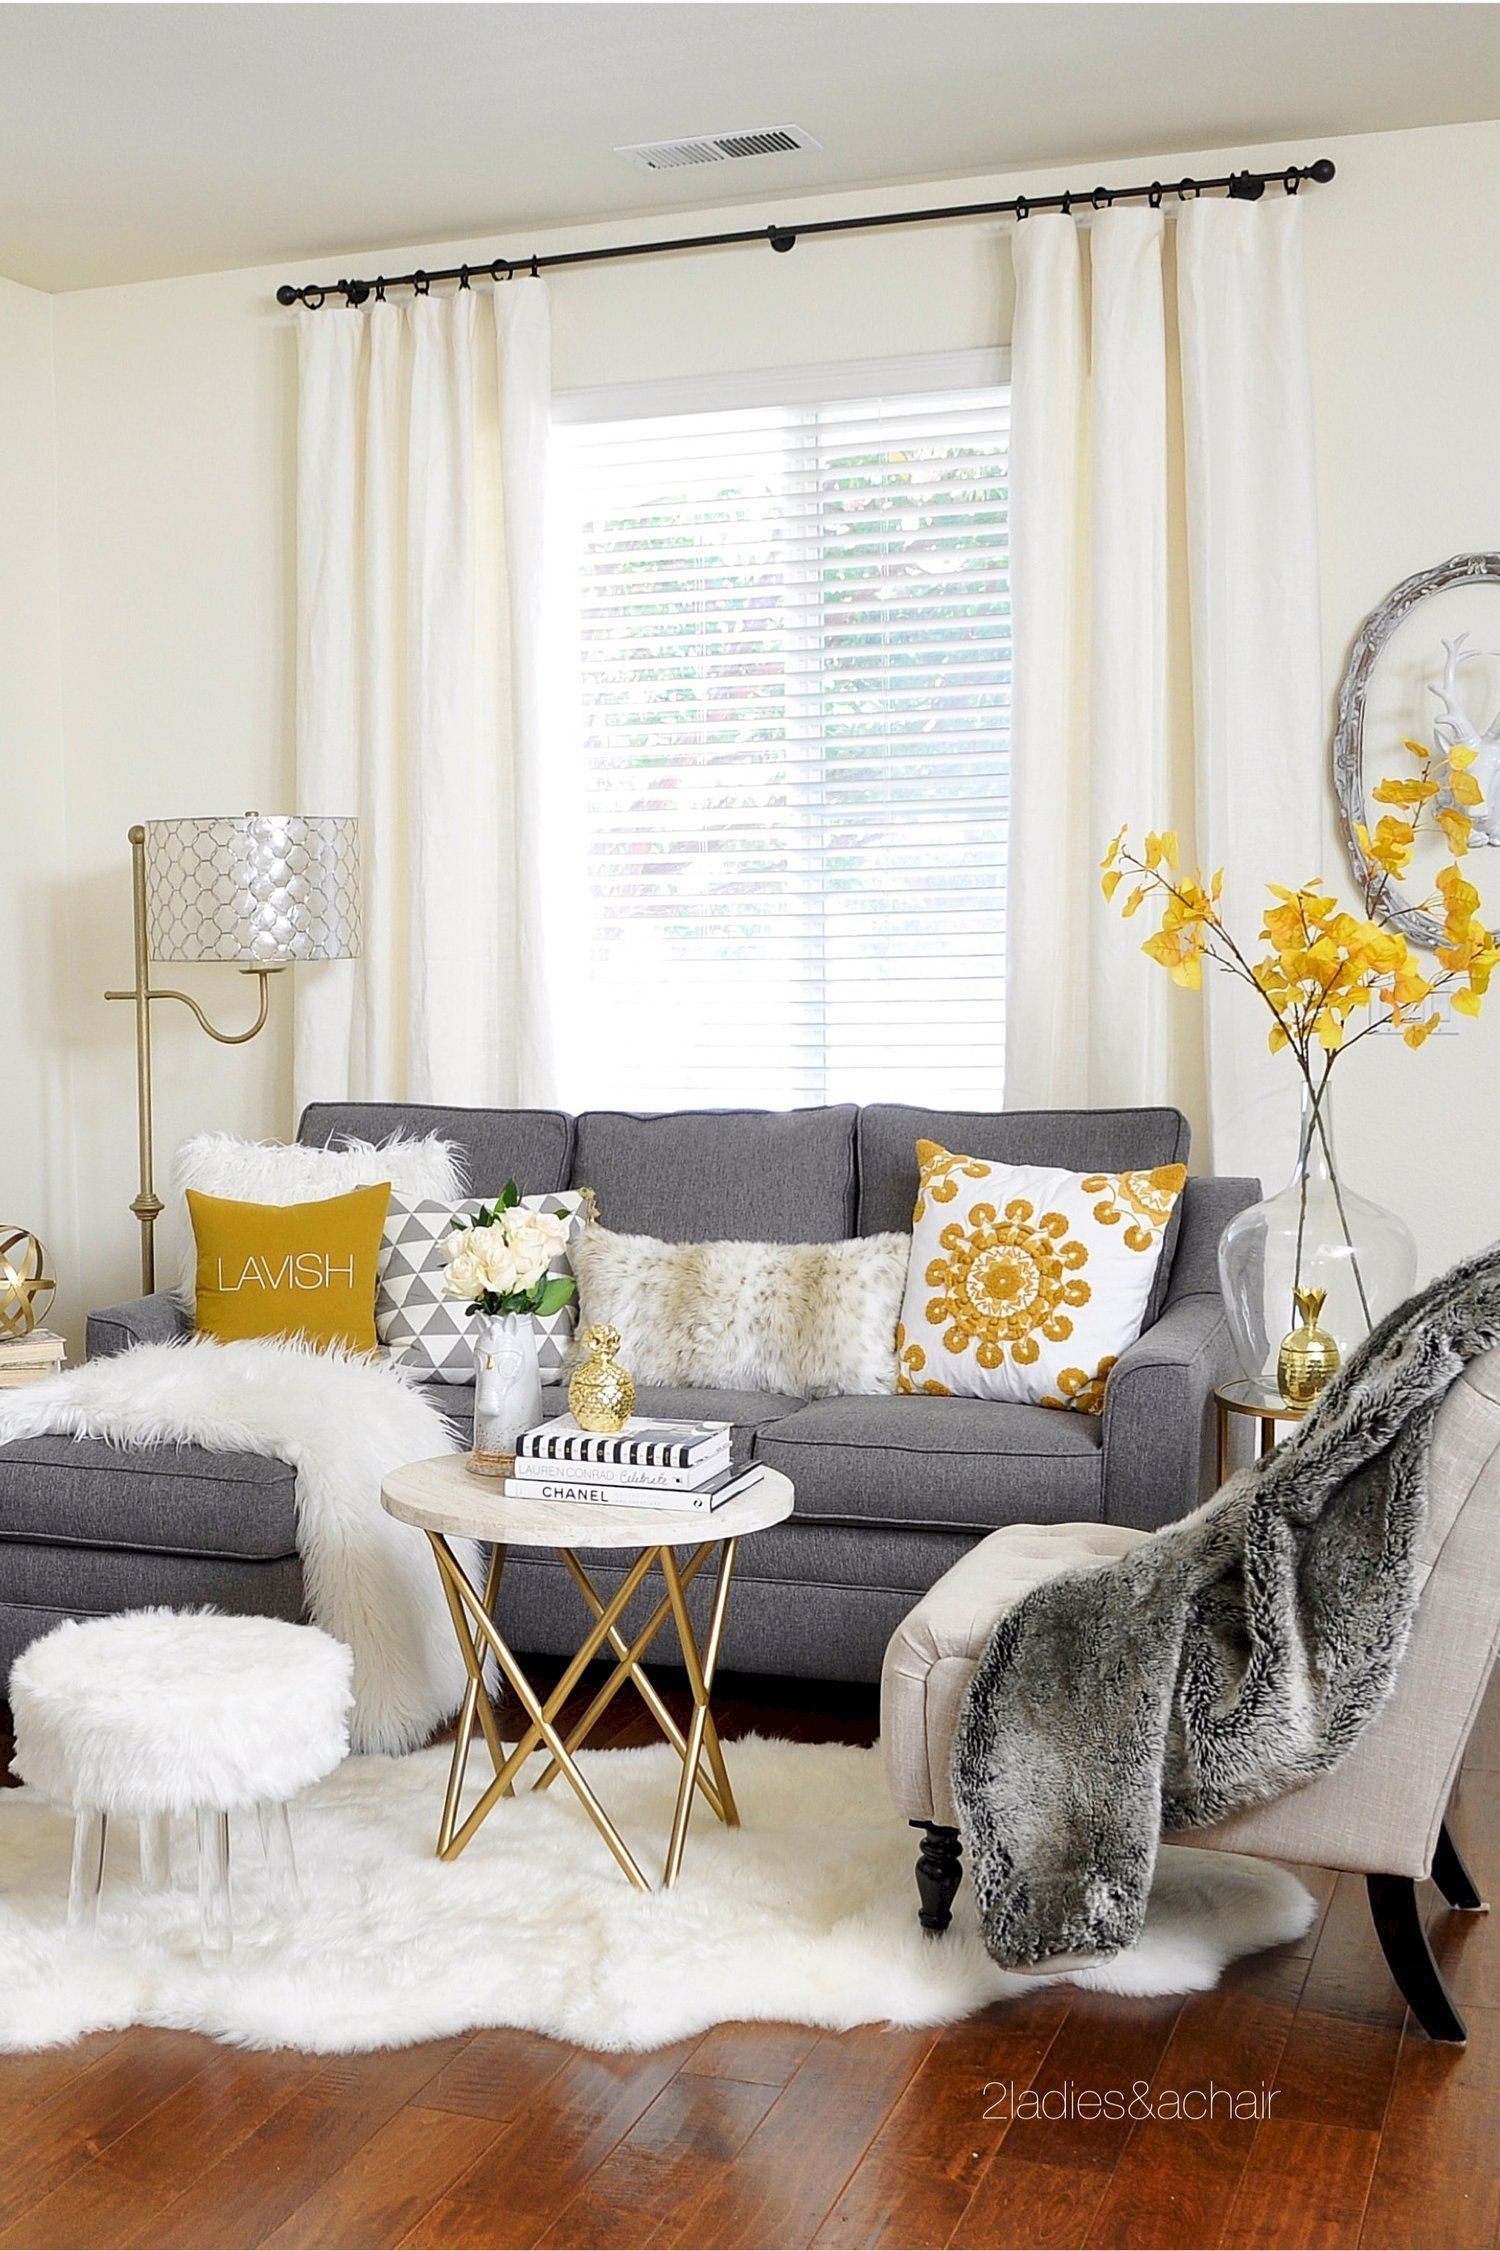 55 Small Living Room Design Ideas On A Budget 2021   Living room decor grey couch, Best living ...